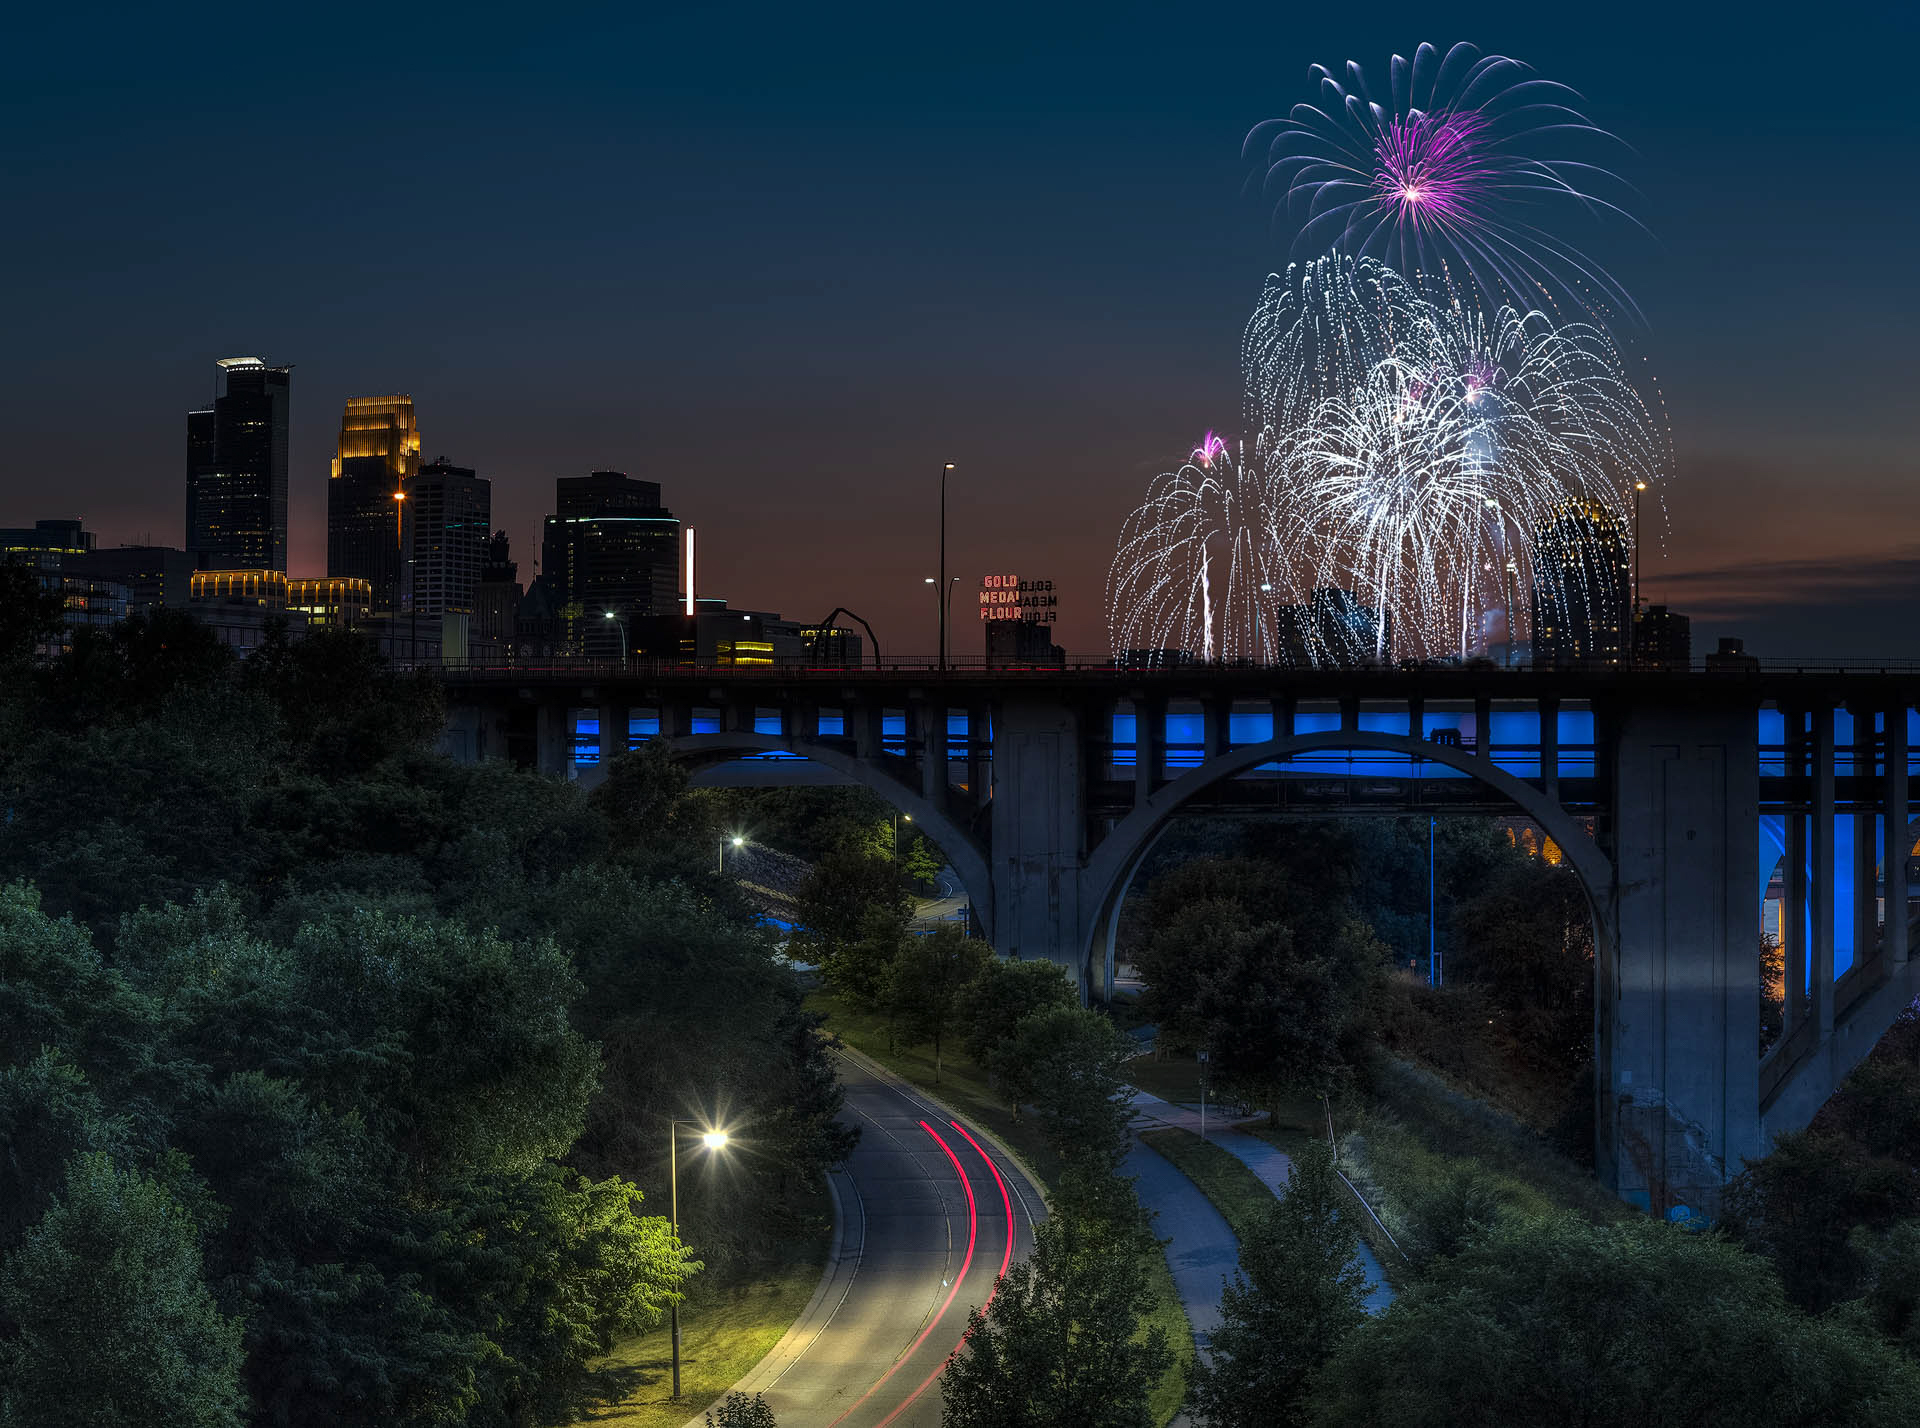 Car Trails and Fireworks - Digital (Artificial Light) - Name Withheld Per Request